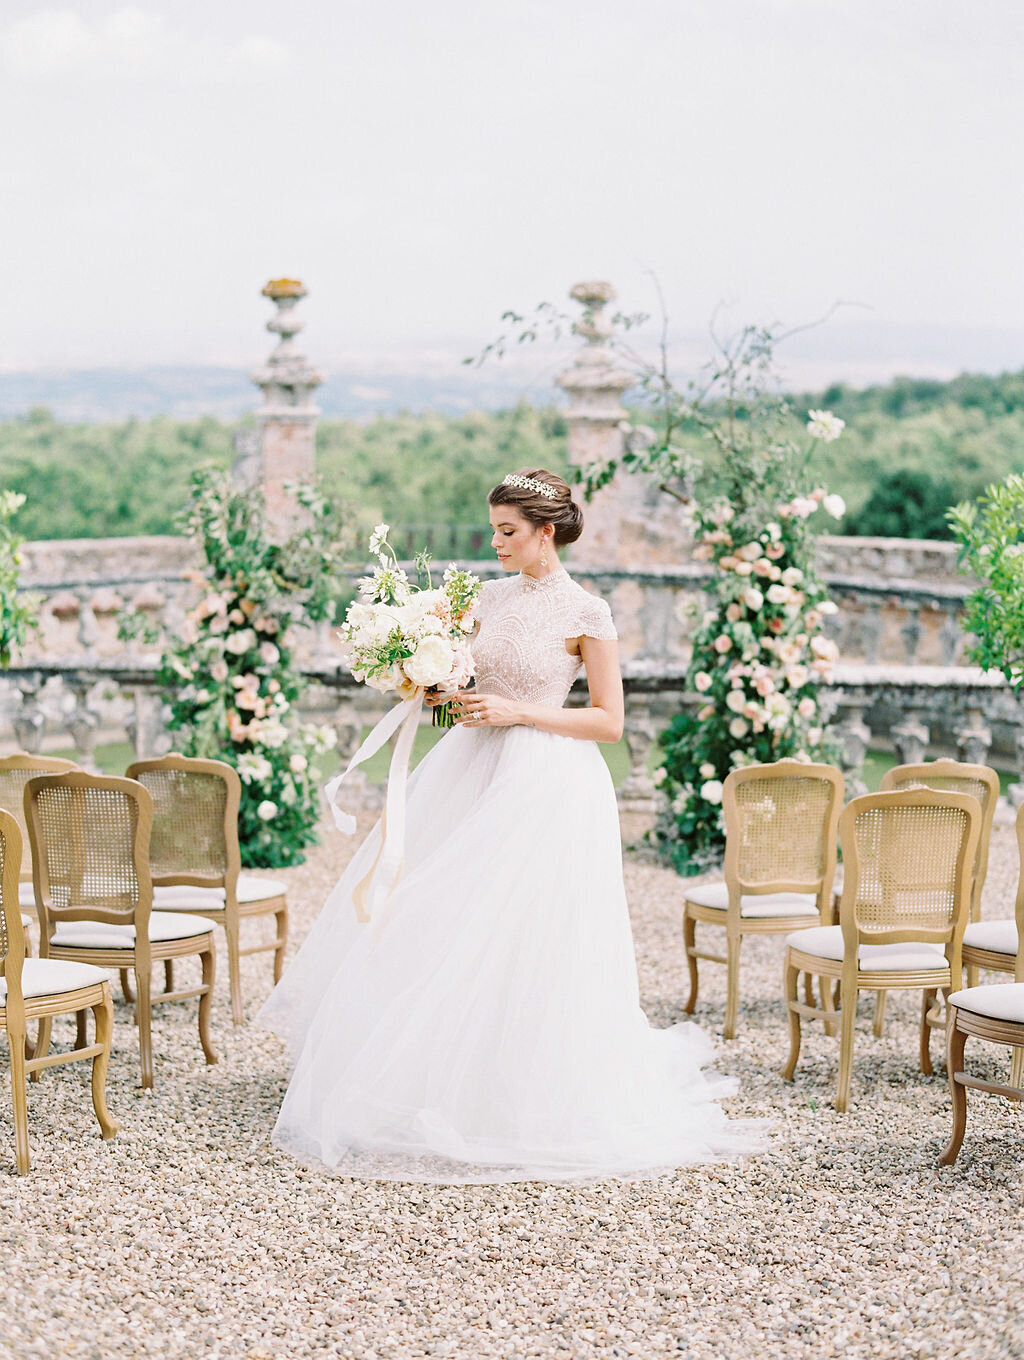 Trine_Juel_hair_and_makeupartist_wedding_Italy_Castello_Di_CelsaQuicksallPhotography_CastelloDiCelsa0224